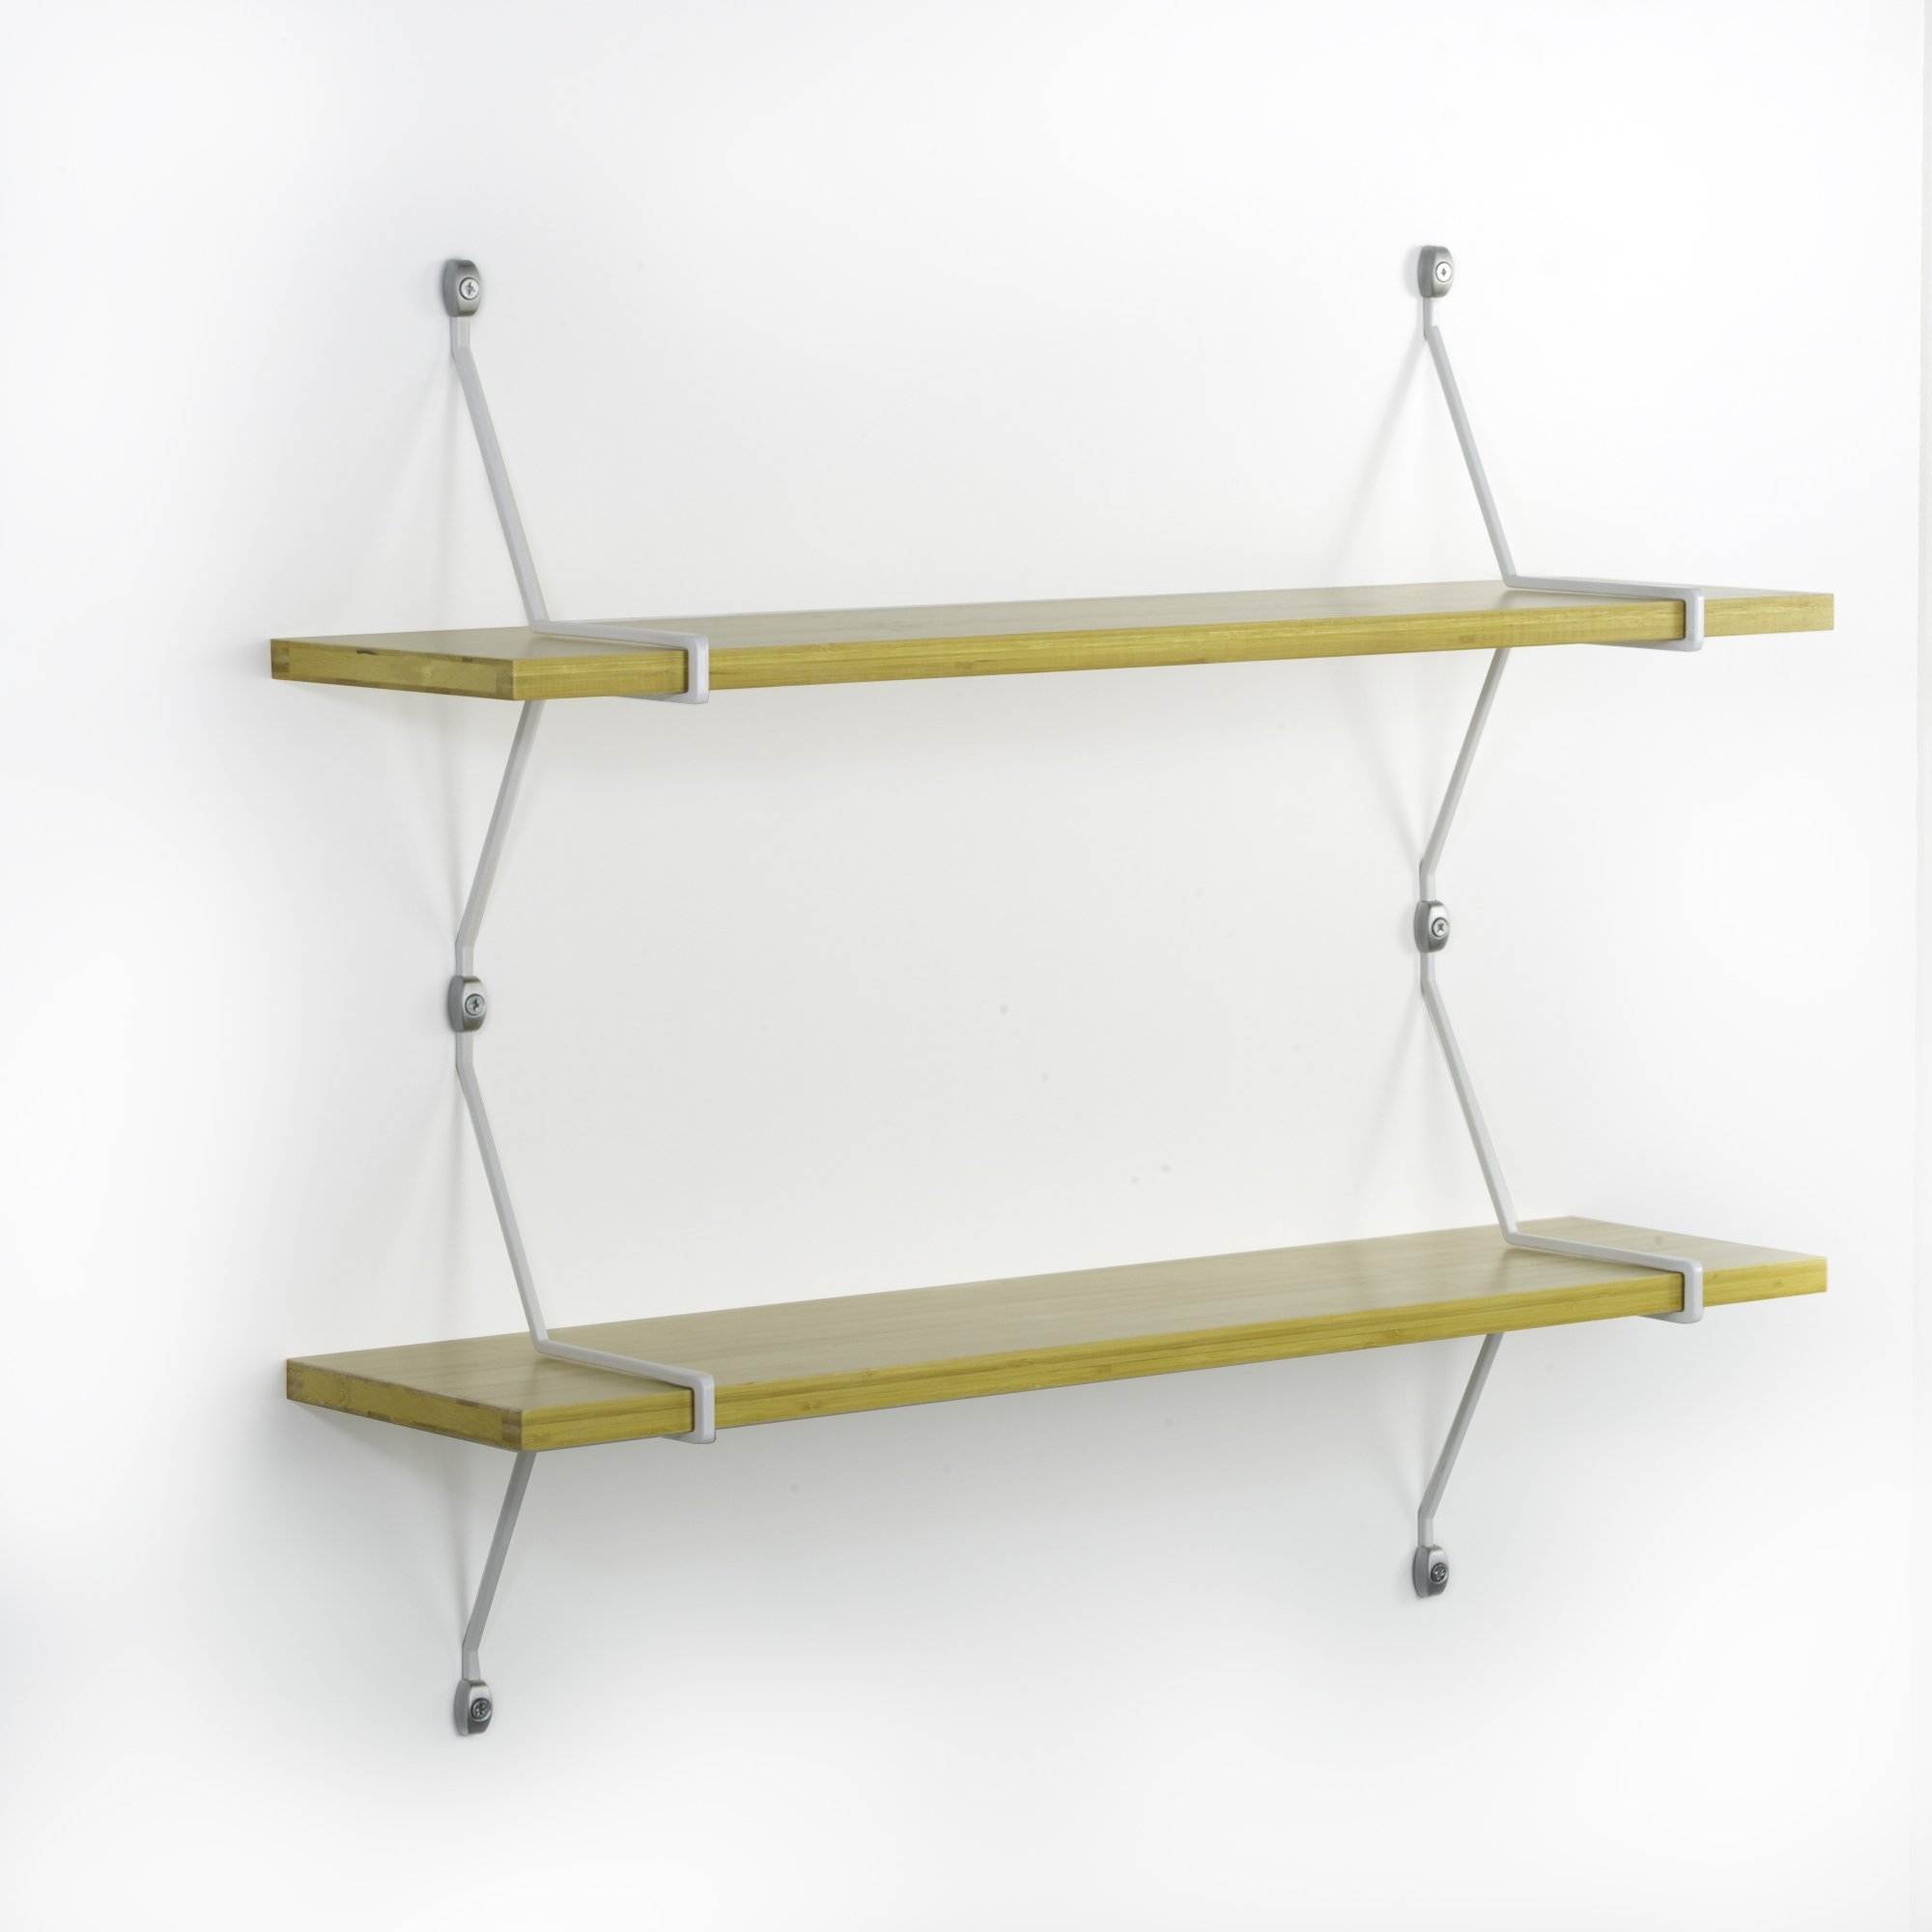 Assa Design Decorative Shelf Kit, Set of Two Wall Mounted Bamboo Shelves with Diagonal Mounting Brackets